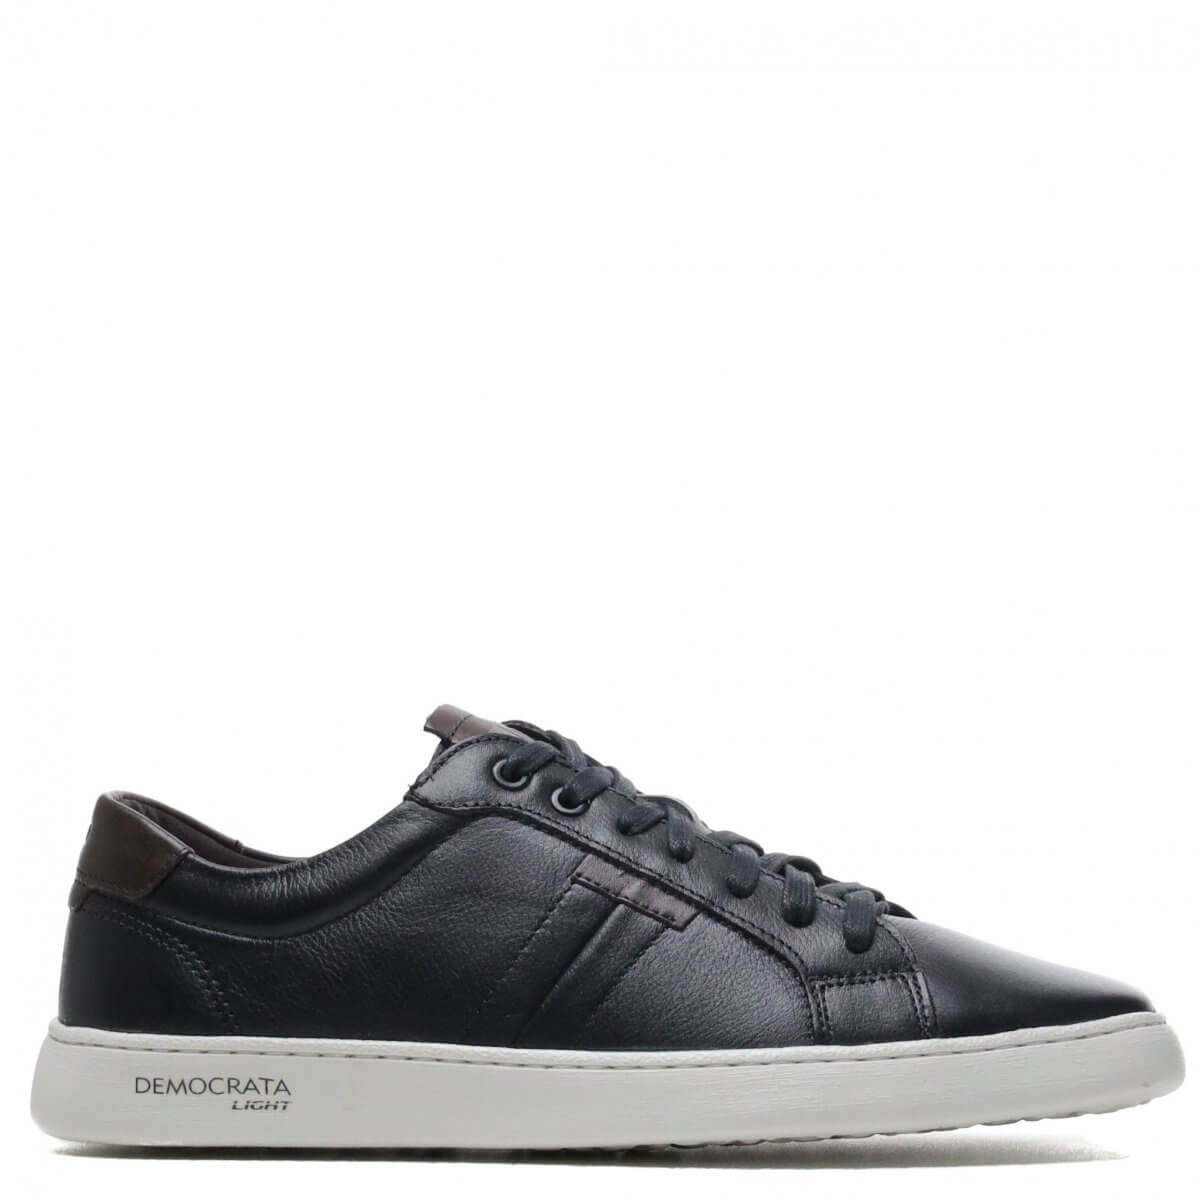 Sapatênis Democrata Denim Hover Light Preto